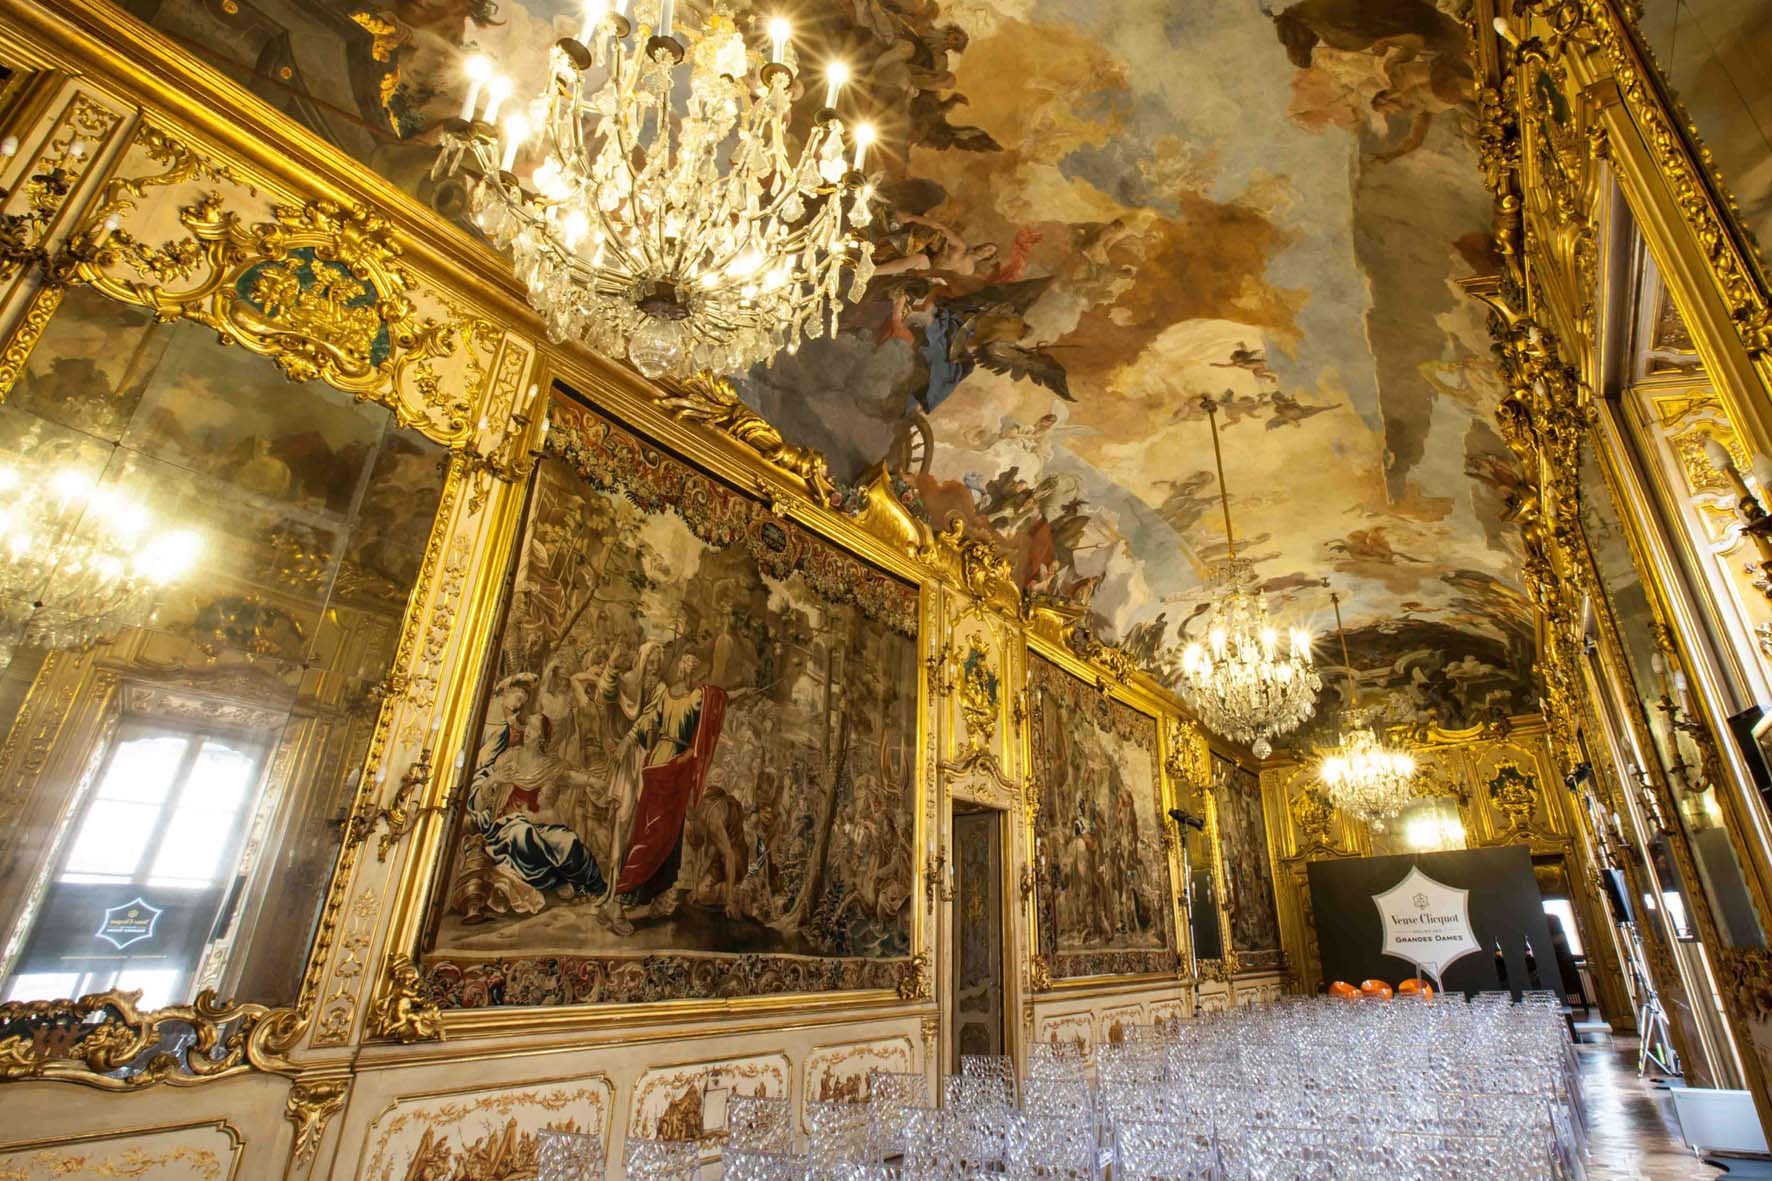 LOUIS VUITTON MOËT HENNESSY Veuve Clicquot VCP Gala Dinner Event Set Design Styling Palazzo Clerici Milano 05